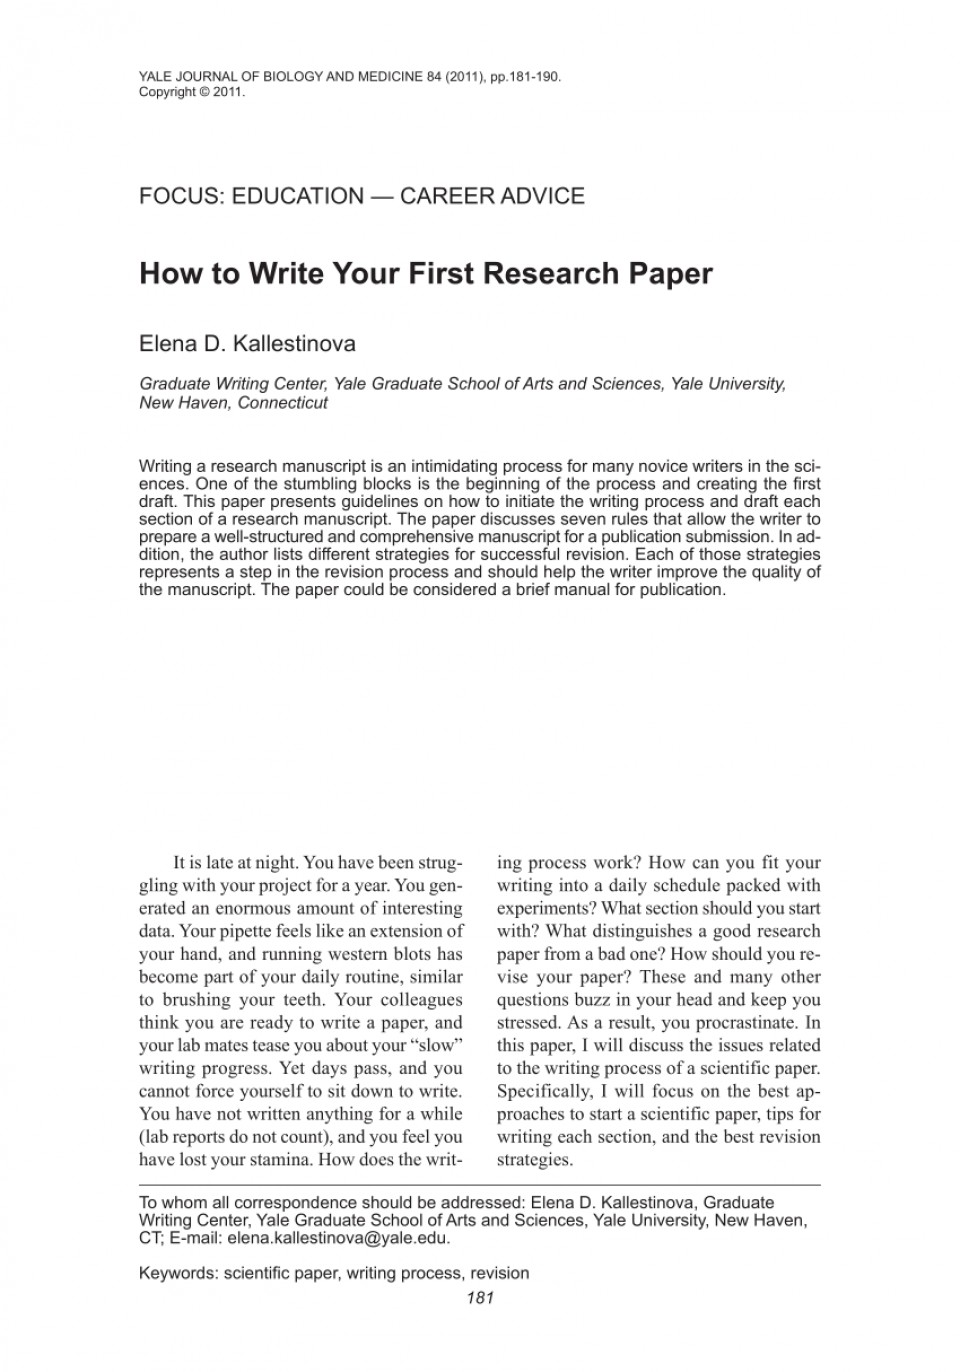 003 How To Write Research Paper Frightening Abstract For Sample Proposal A Summary Of Your 960